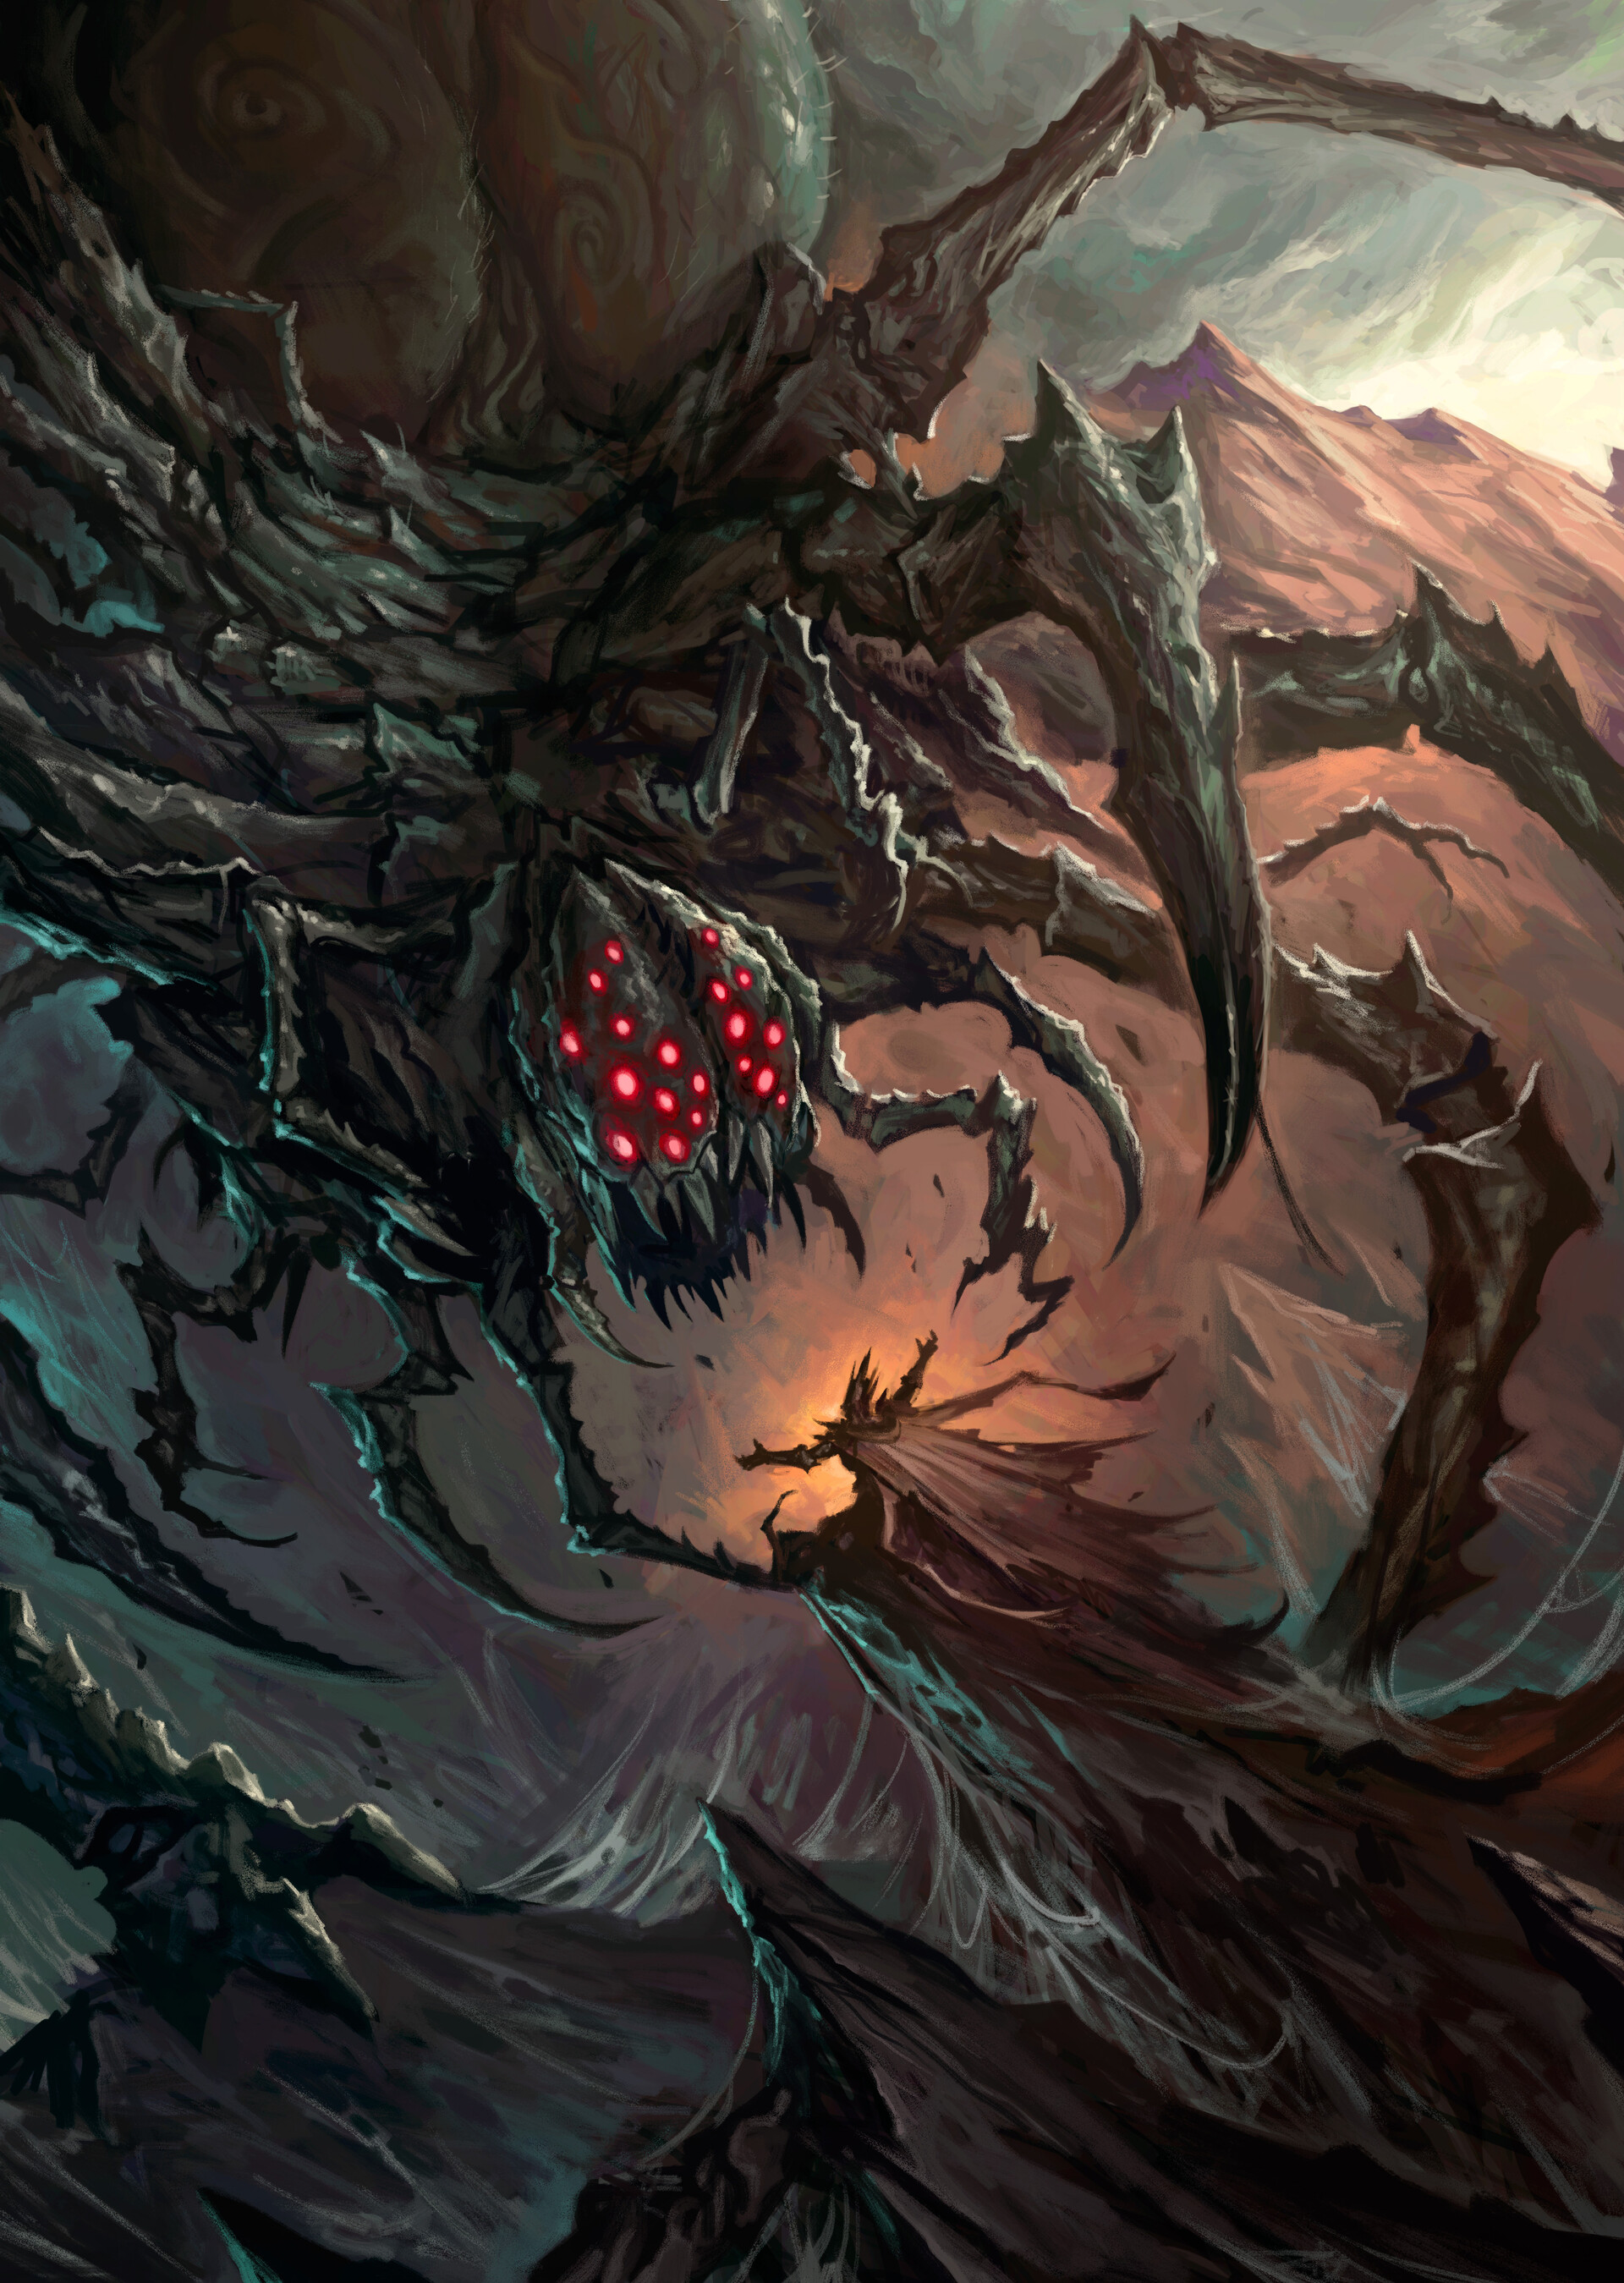 ArtStation - The Bargain with Ungoliant, Diana Franco